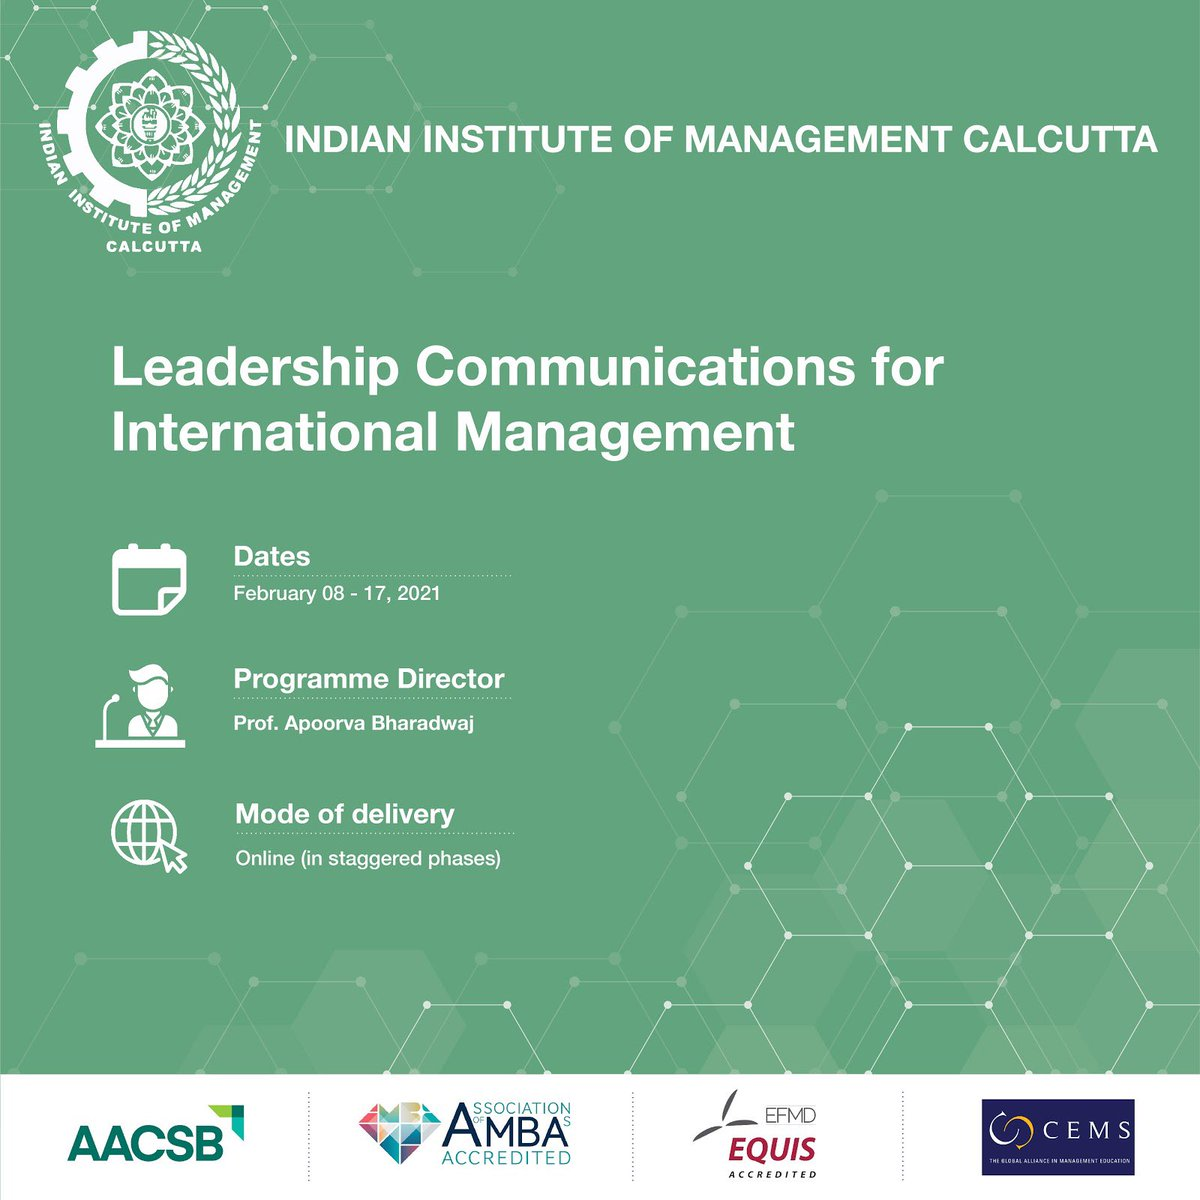 Increase your productivity in the global market space by learning intercultural communication skills and adopt diverse communication strategies with IIM Calcutta's Leadership Communications for International Management online programme. Know more: https://t.co/7Ds2uqK8BY https://t.co/Kp2MMVskWl